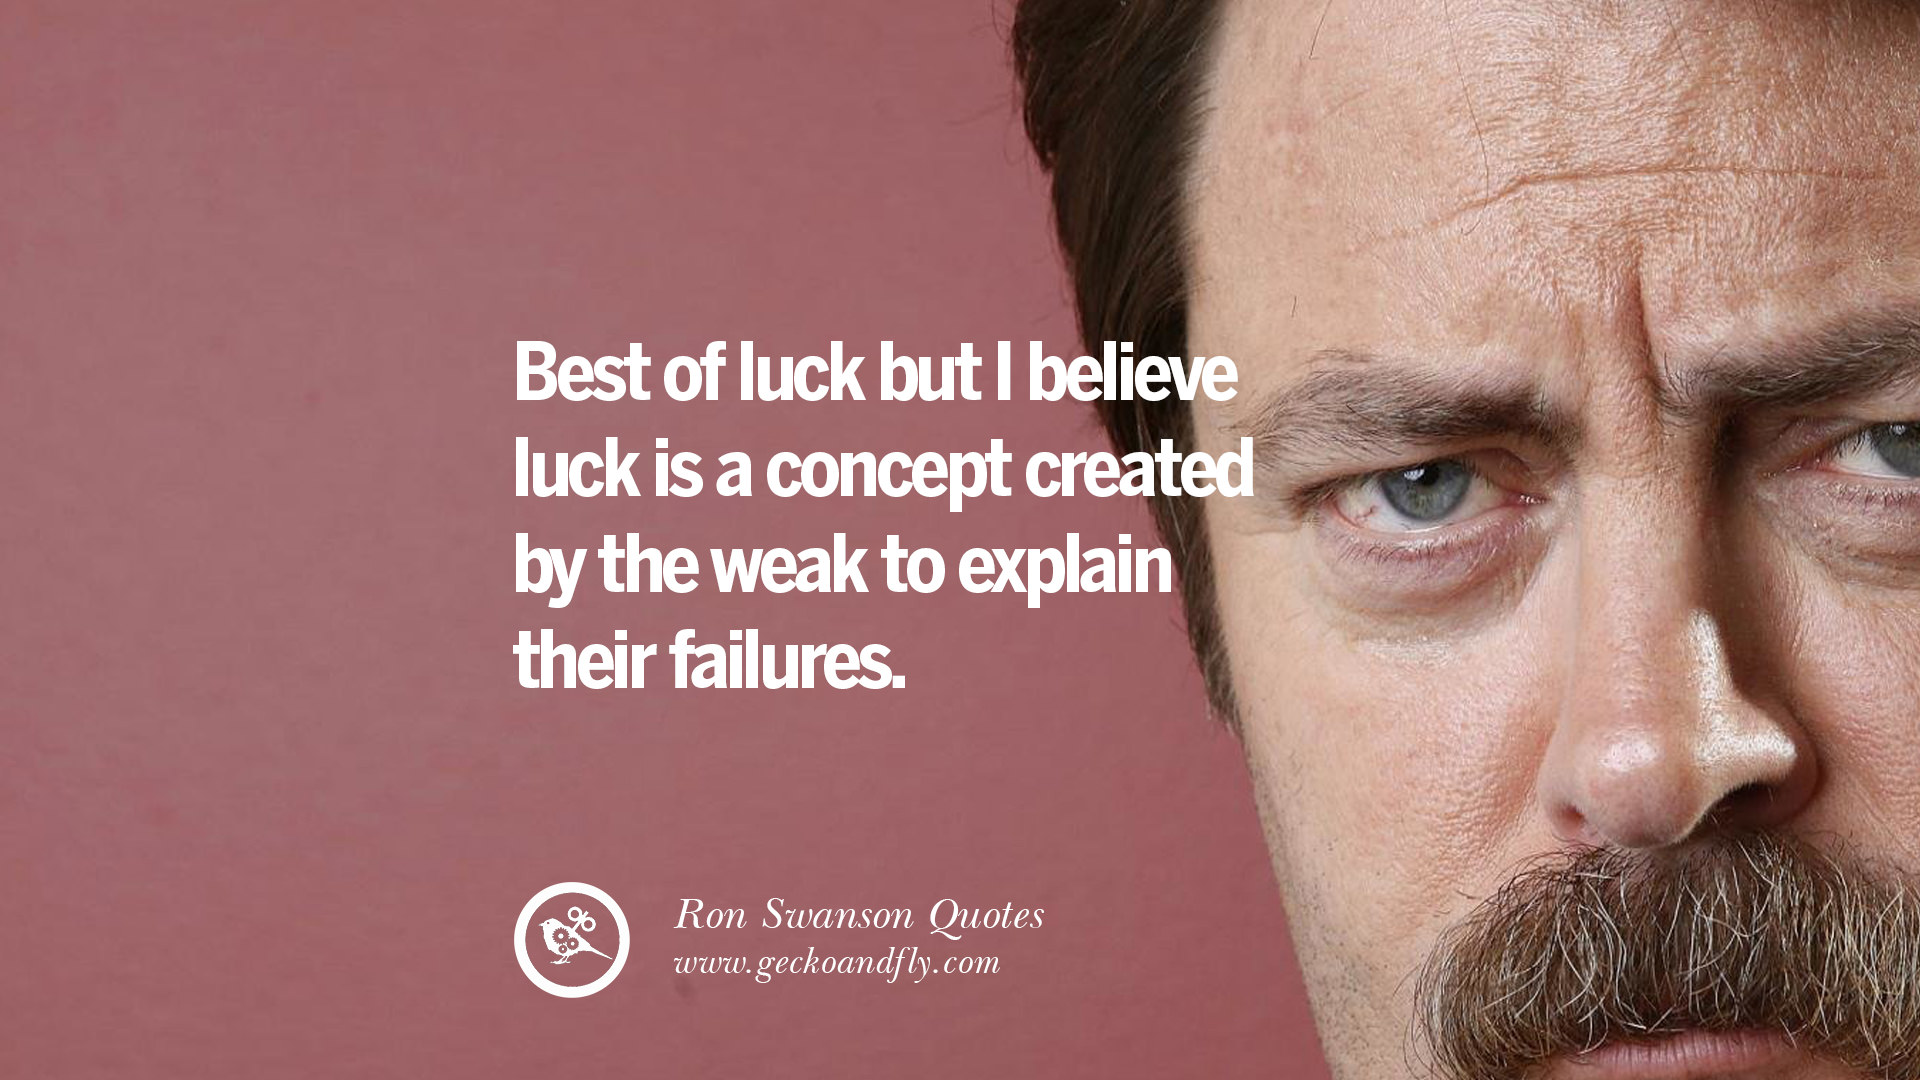 14 Funny Ron Swanson Quotes And Meme On Life